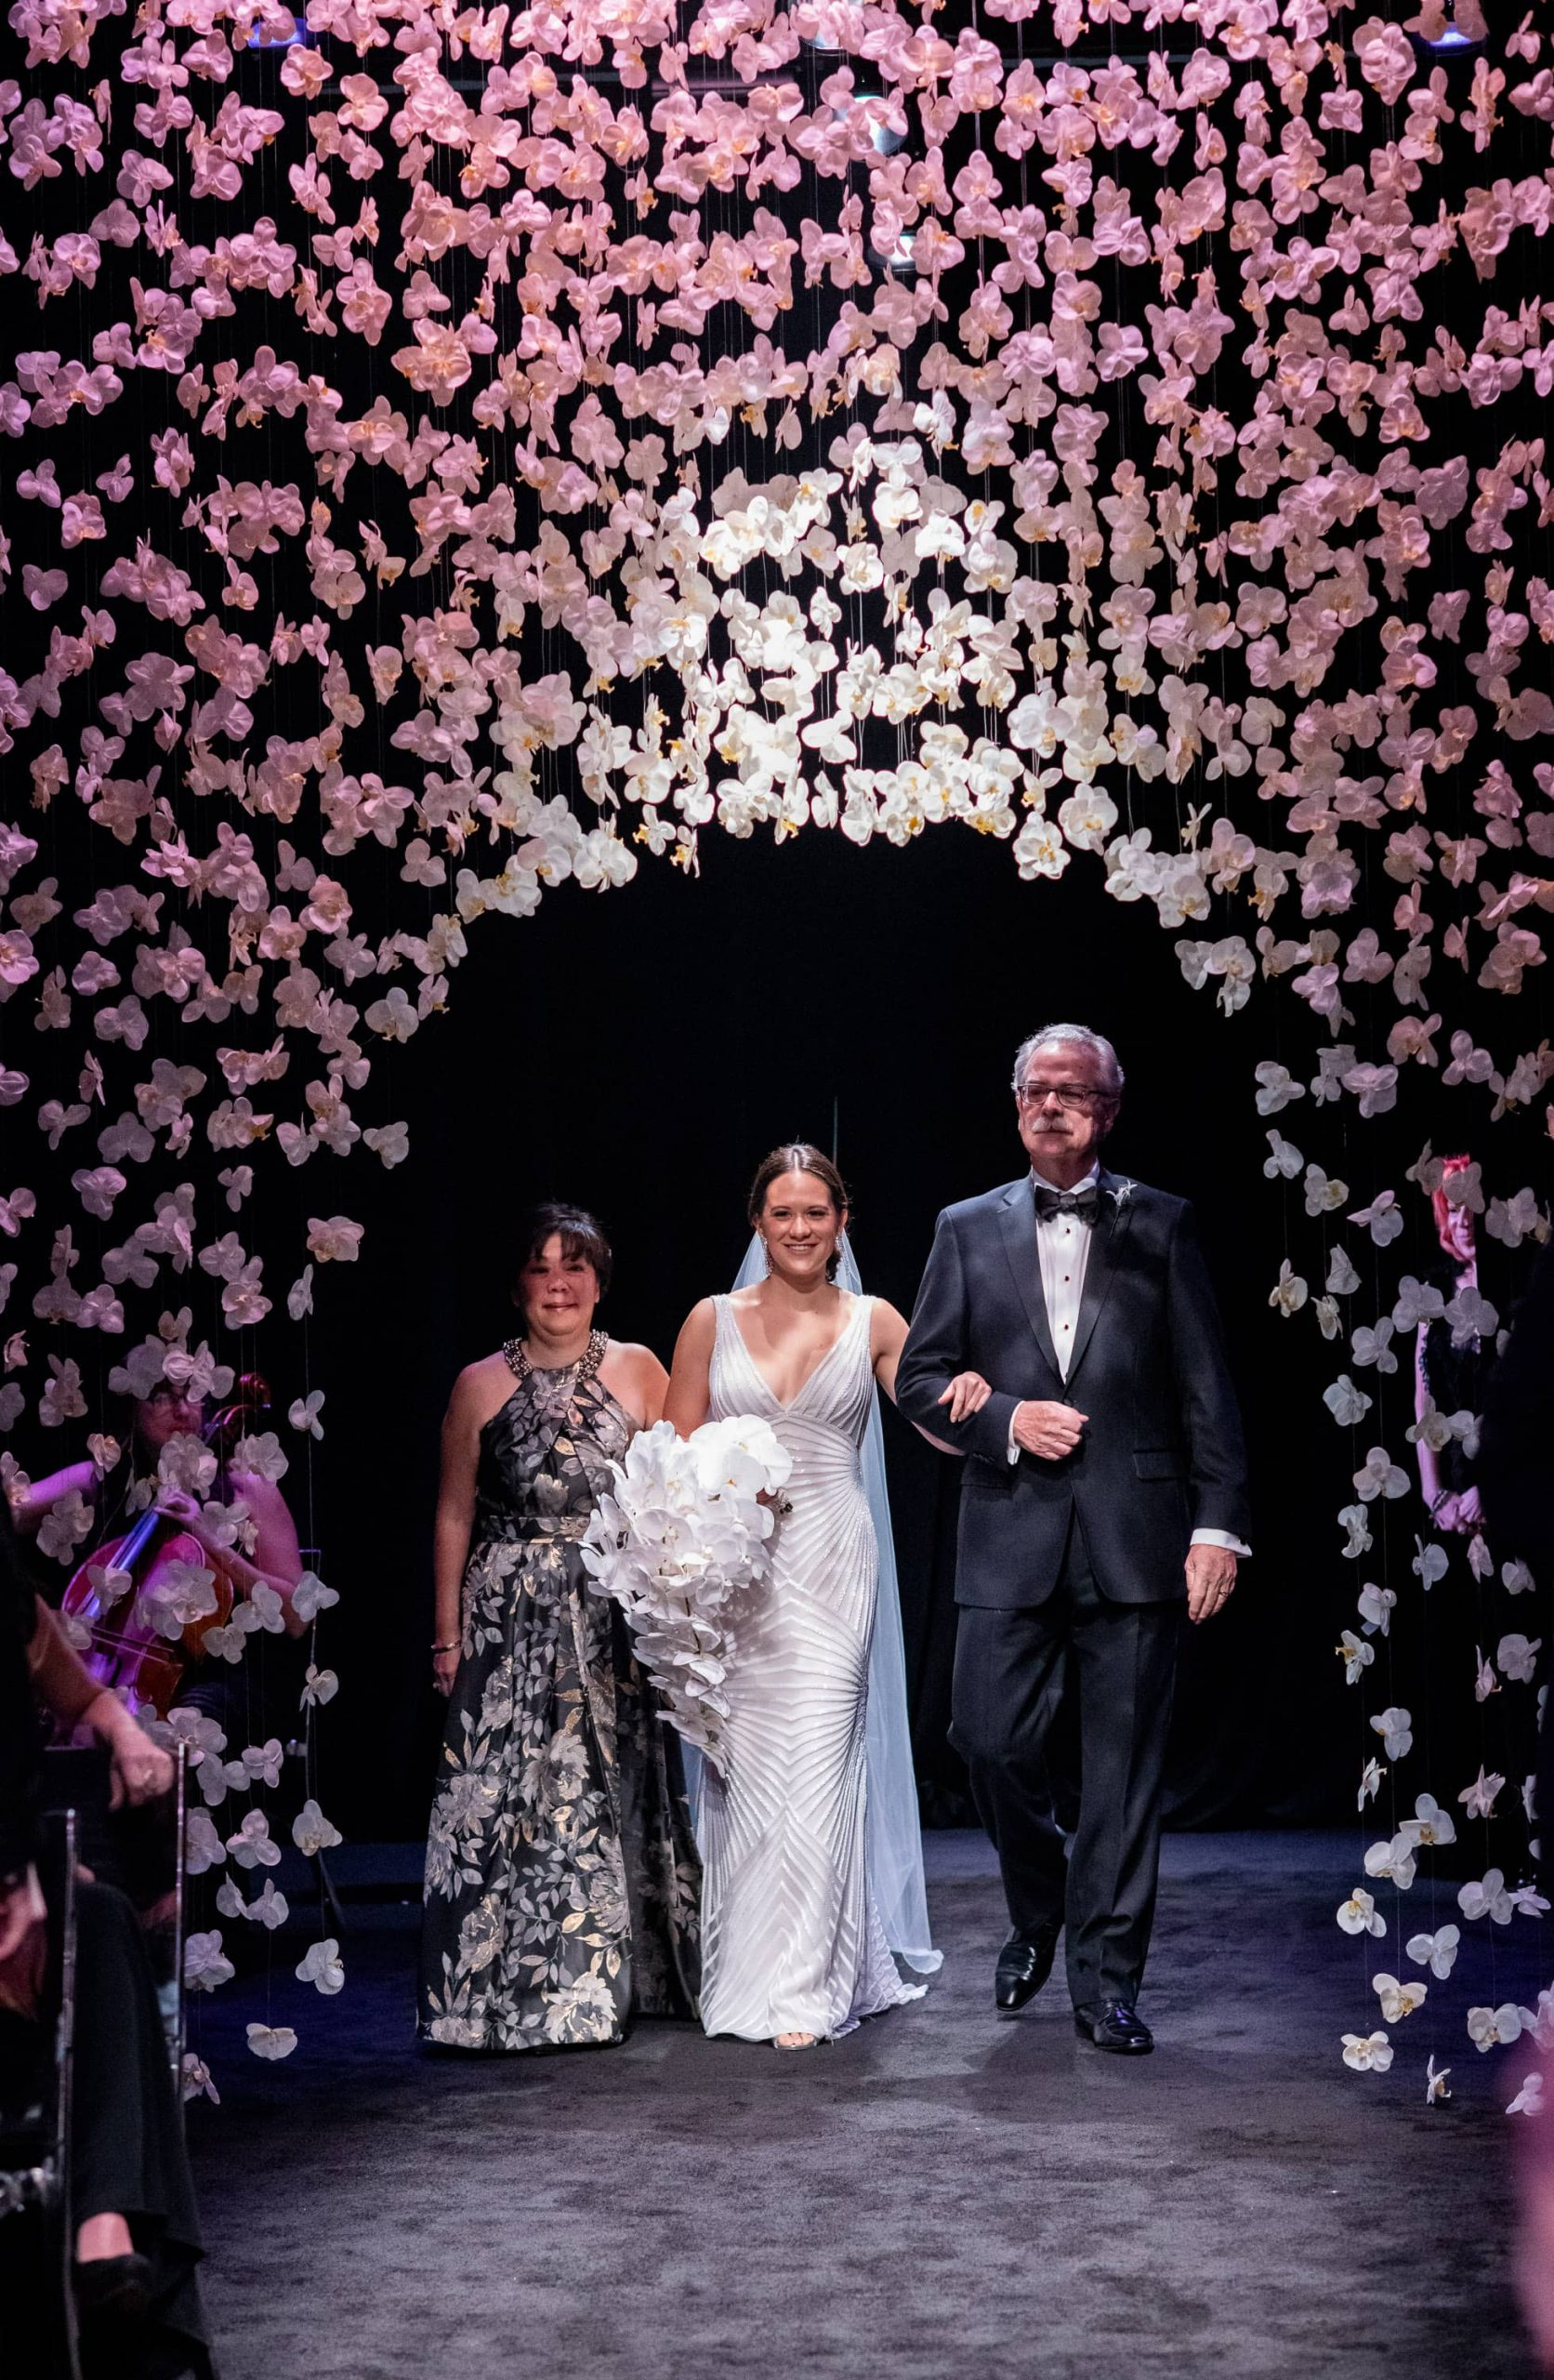 Bride entrance under hanging white orchards during ceremony at this NYE wedding in New York City | Photo by Gruber Photo